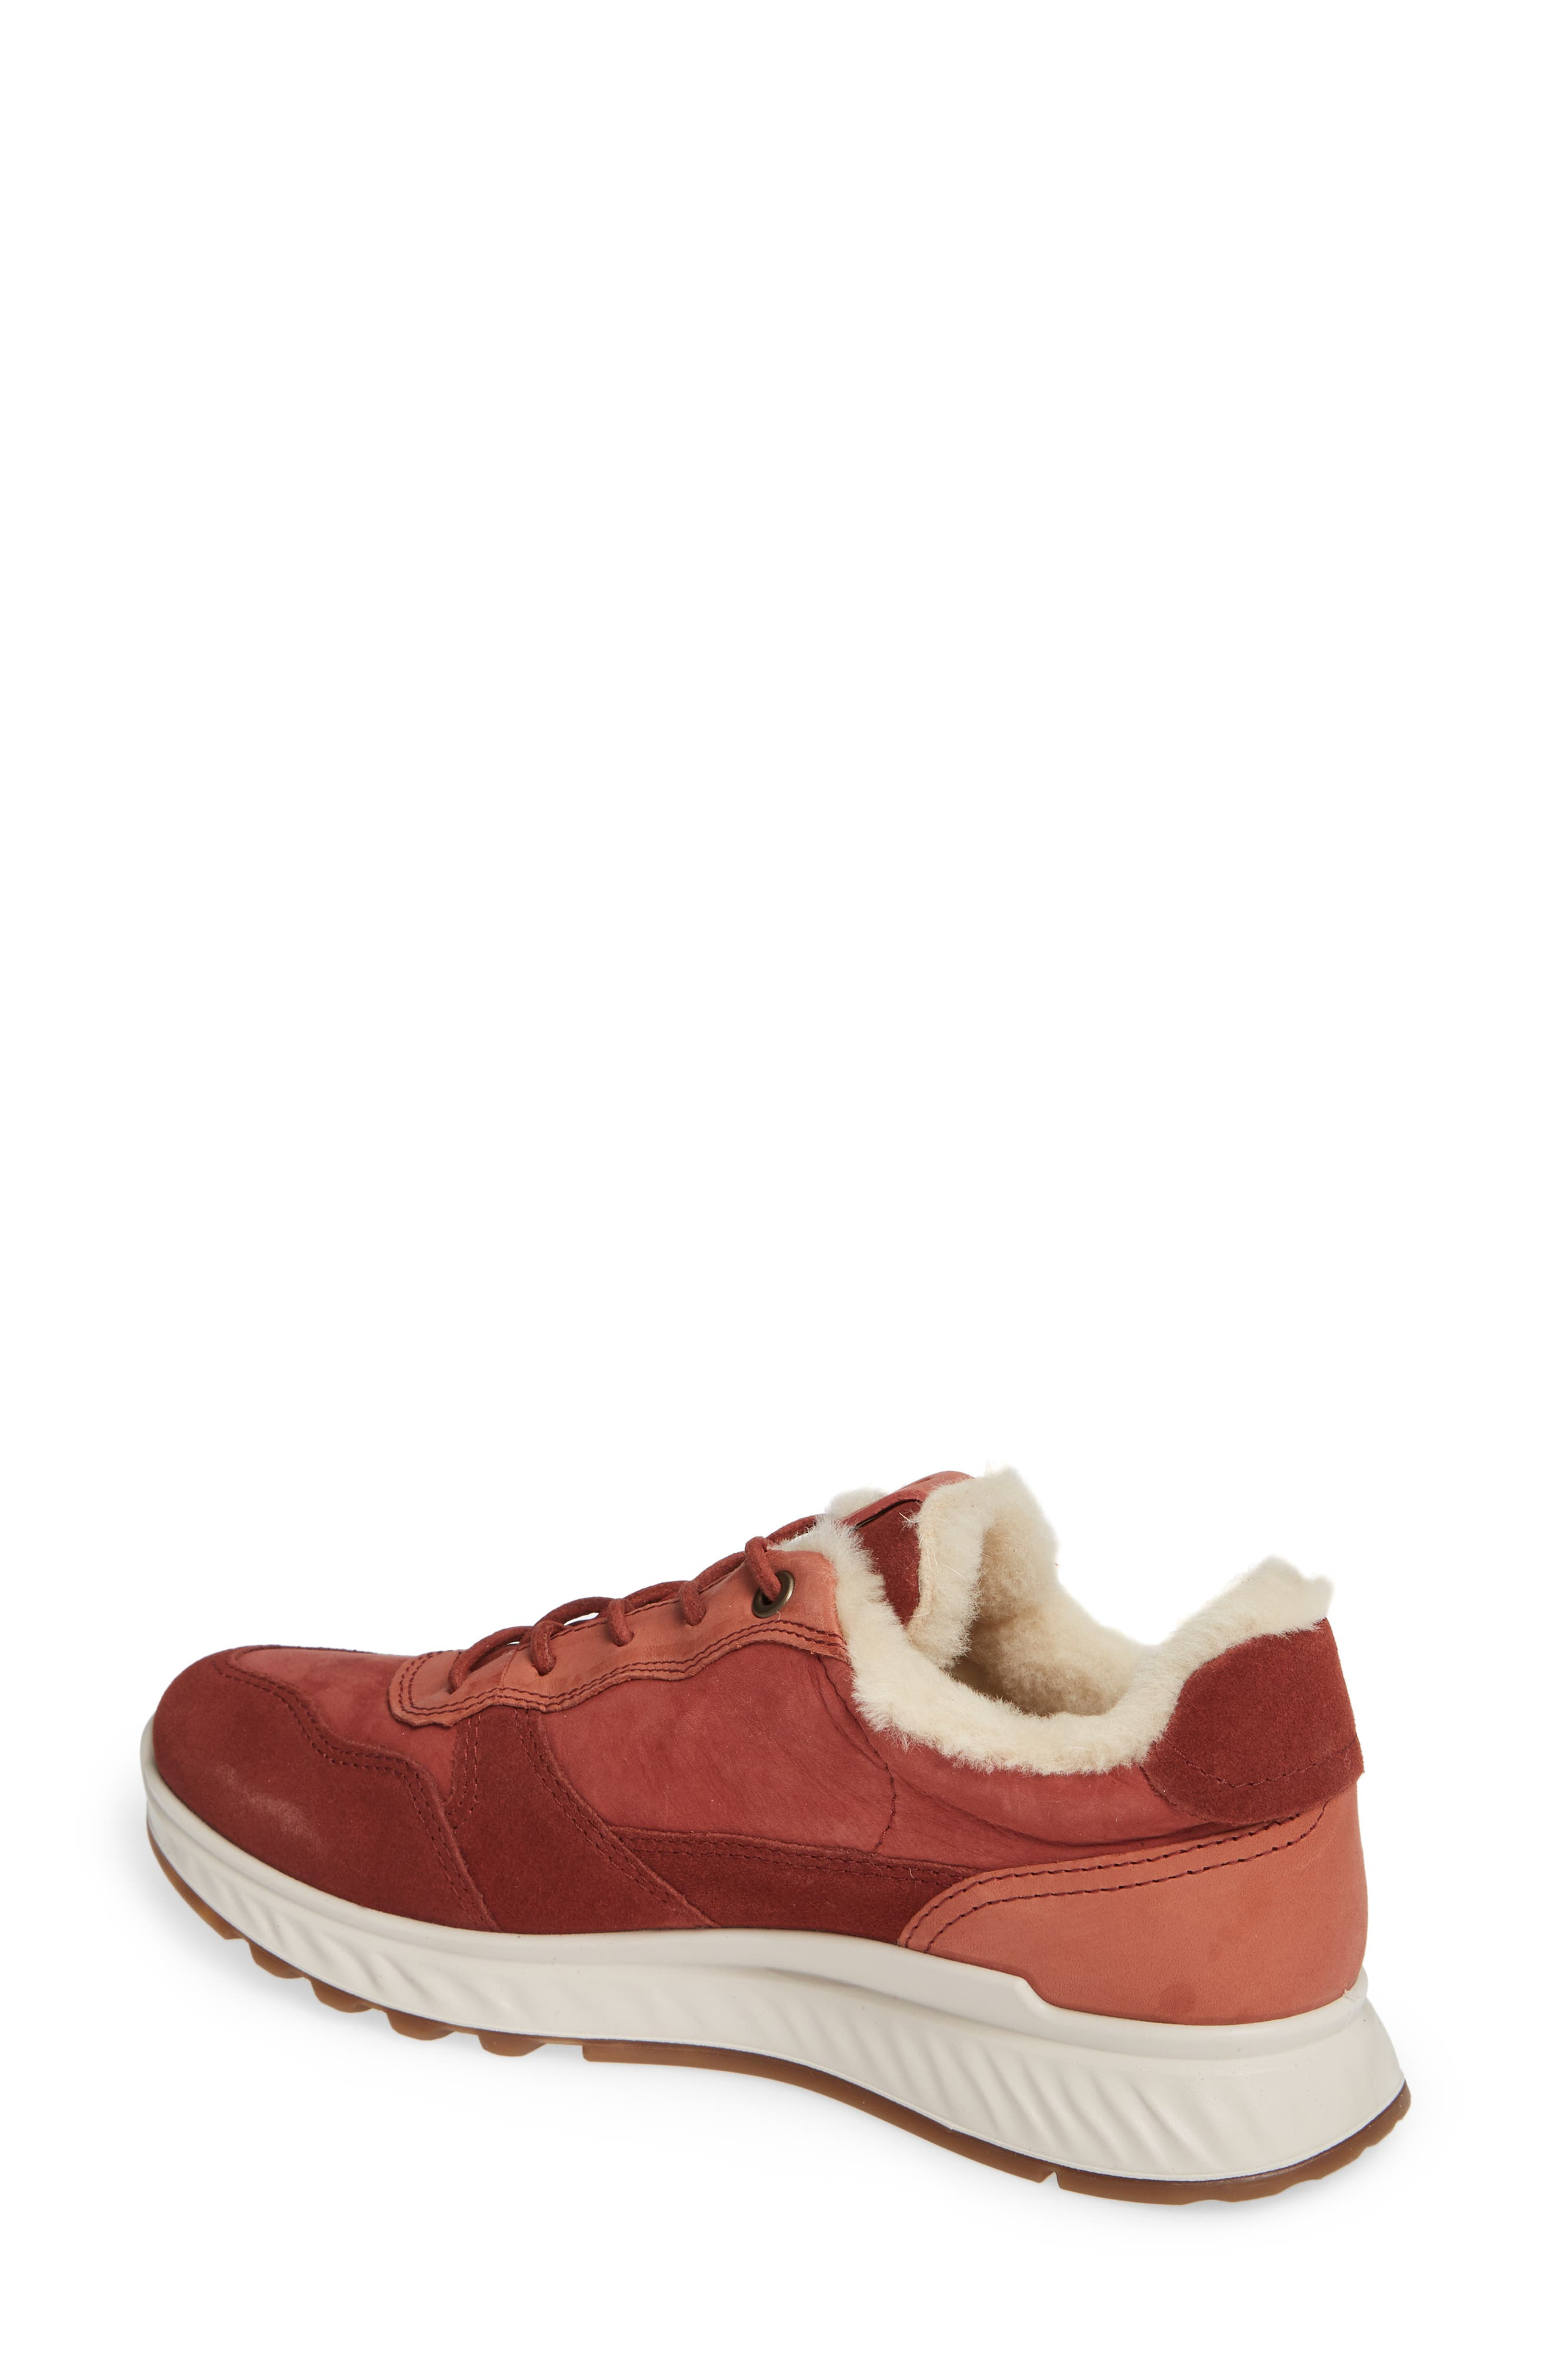 ST1 Genuine Shearling Sneaker,                             Alternate thumbnail 2, color,                             FIRED BRICK NUBUCK LEATHER